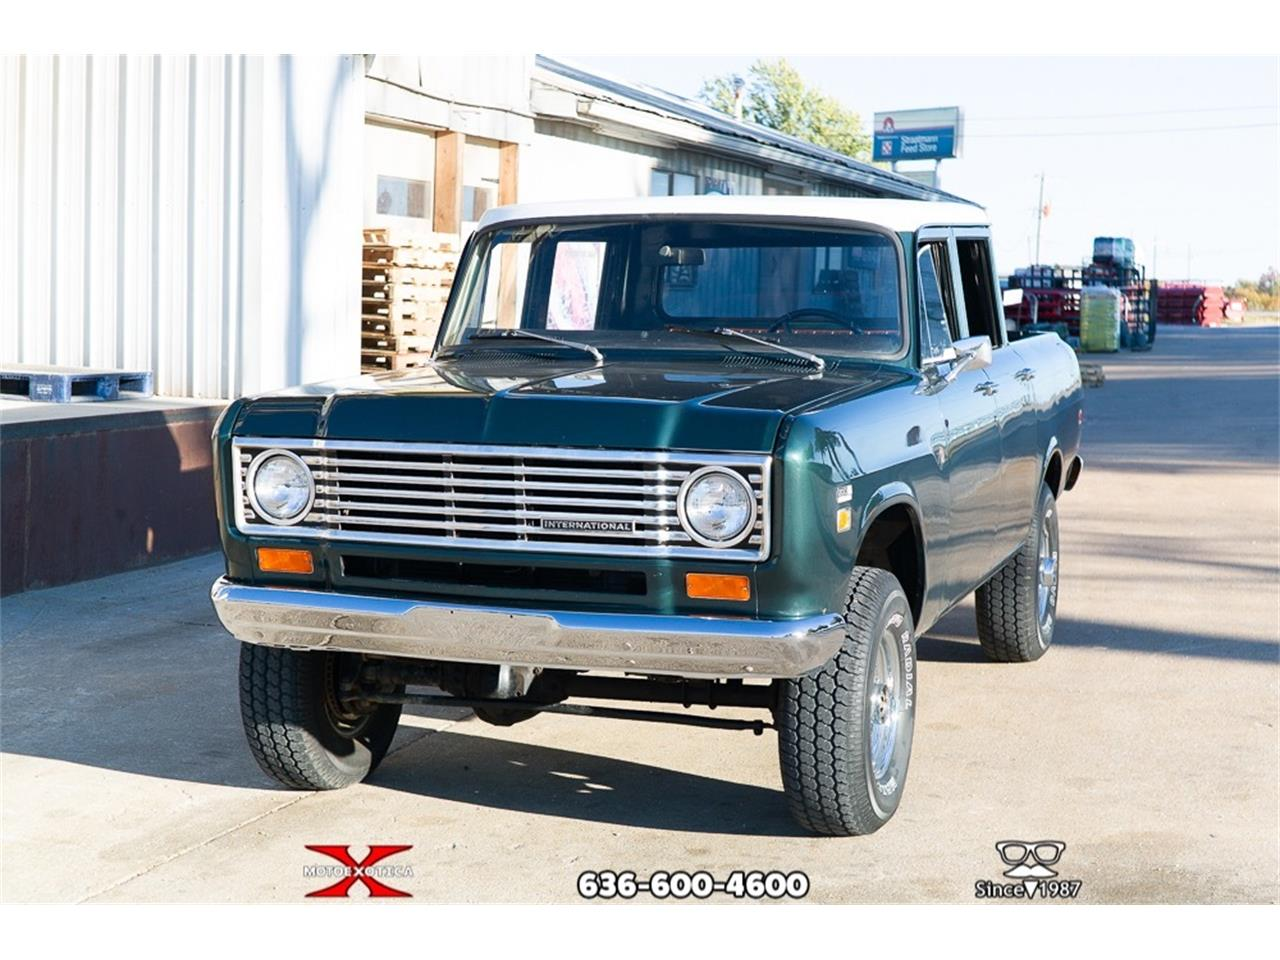 Large Picture of 1974 International Harvester Wagonmaster located in Missouri - $39,900.00 - OY5H